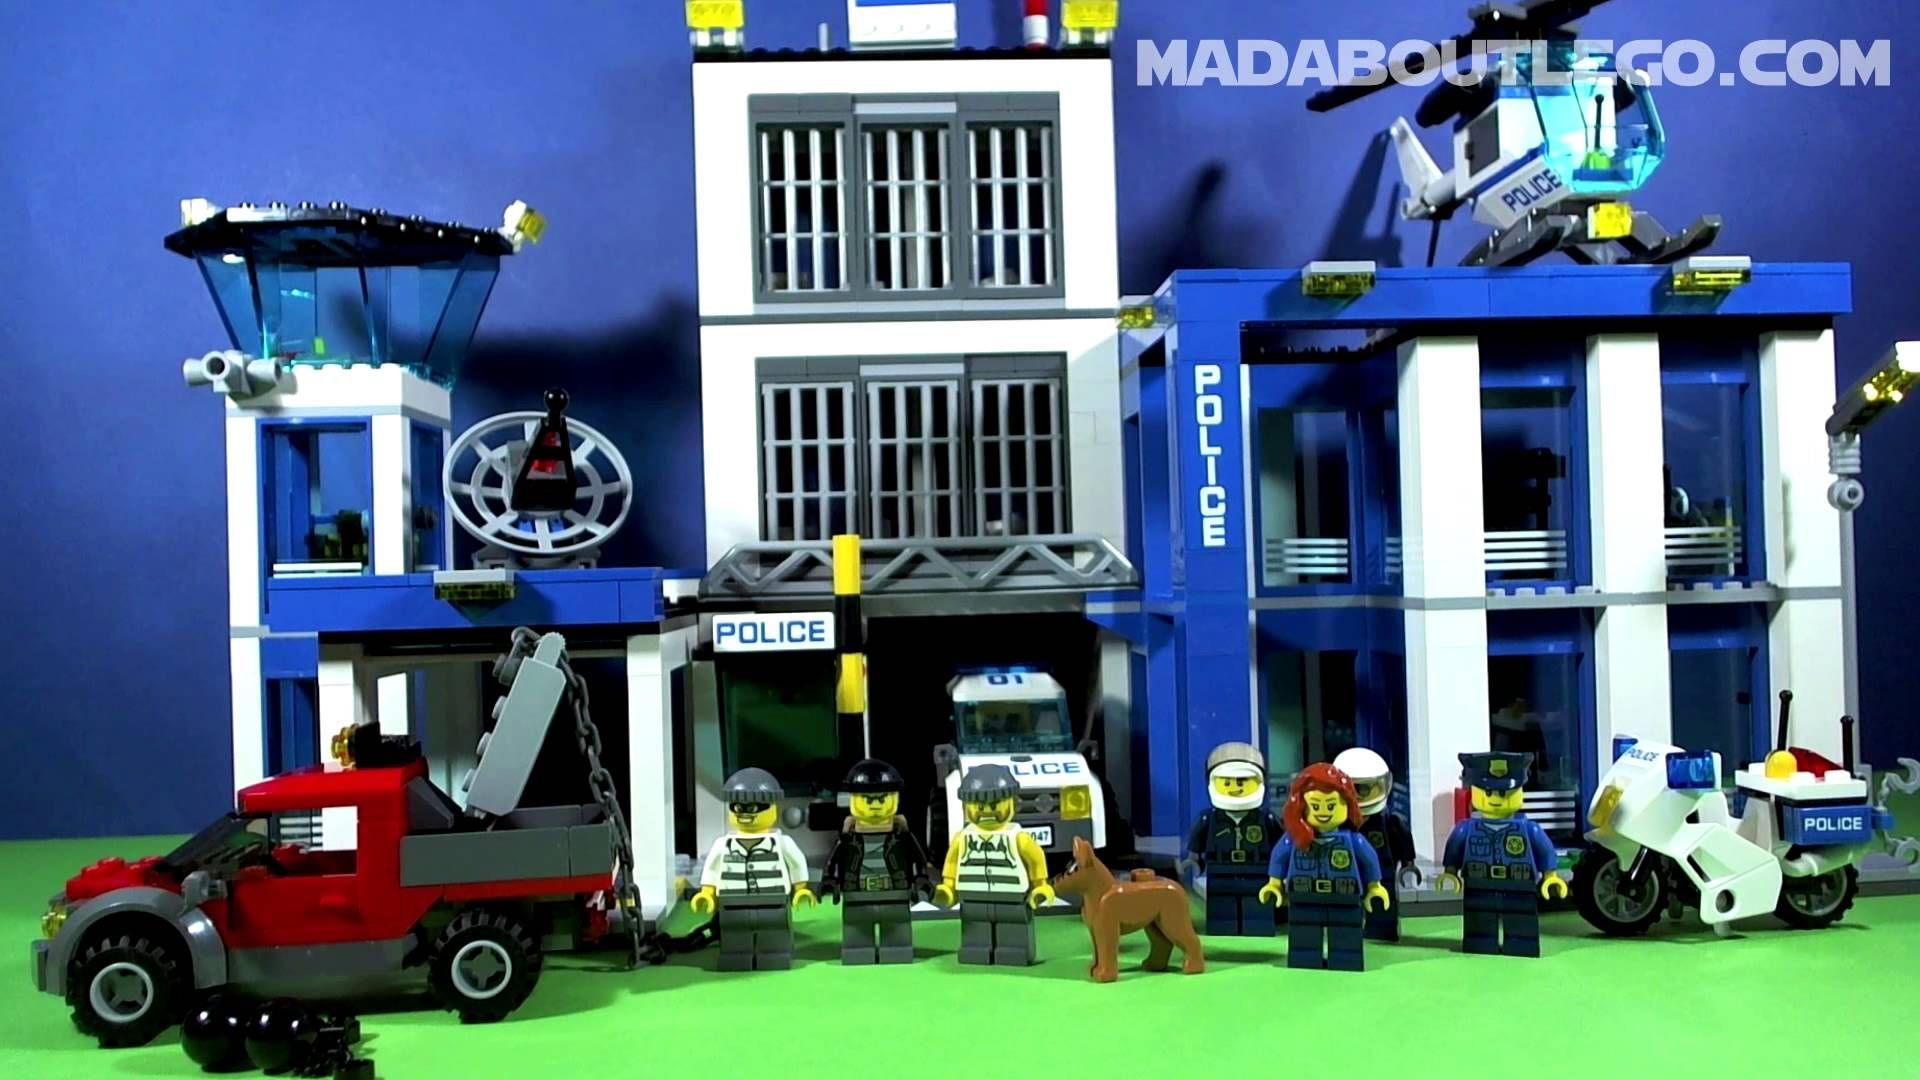 Lego City Police Station 60047 Free Fastest Shipping From Amazon